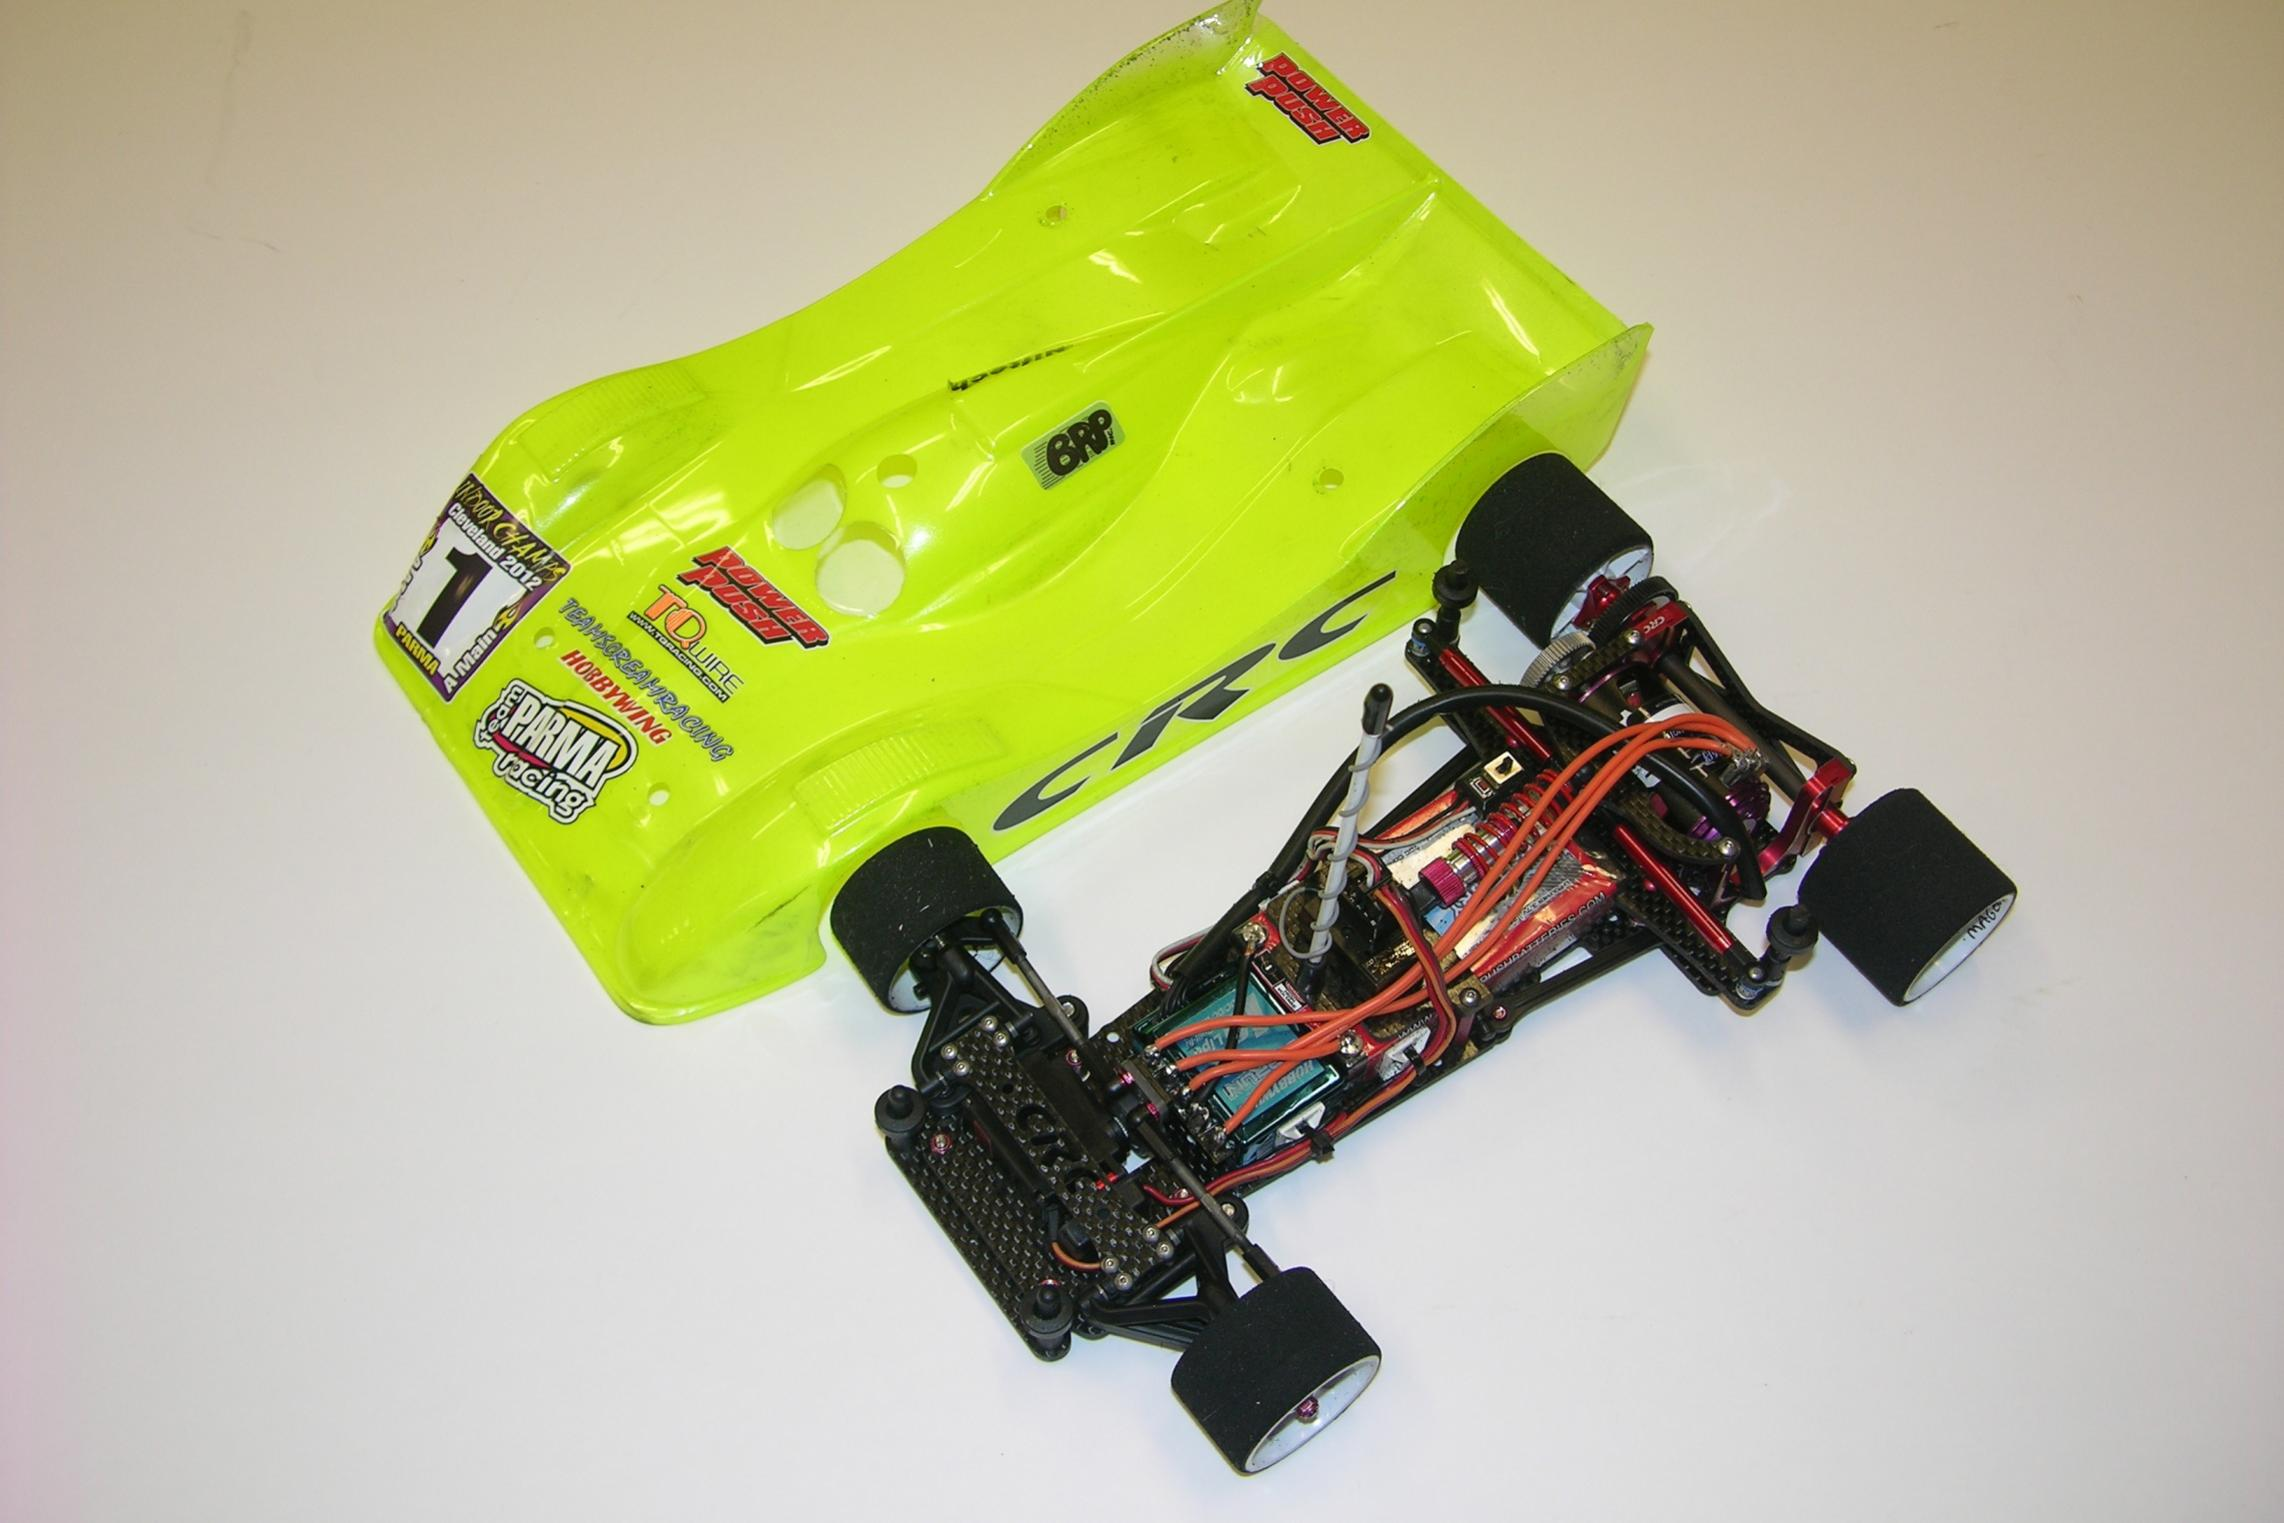 661235 Announcing New Team Crc Xti 1 12th Scale 46